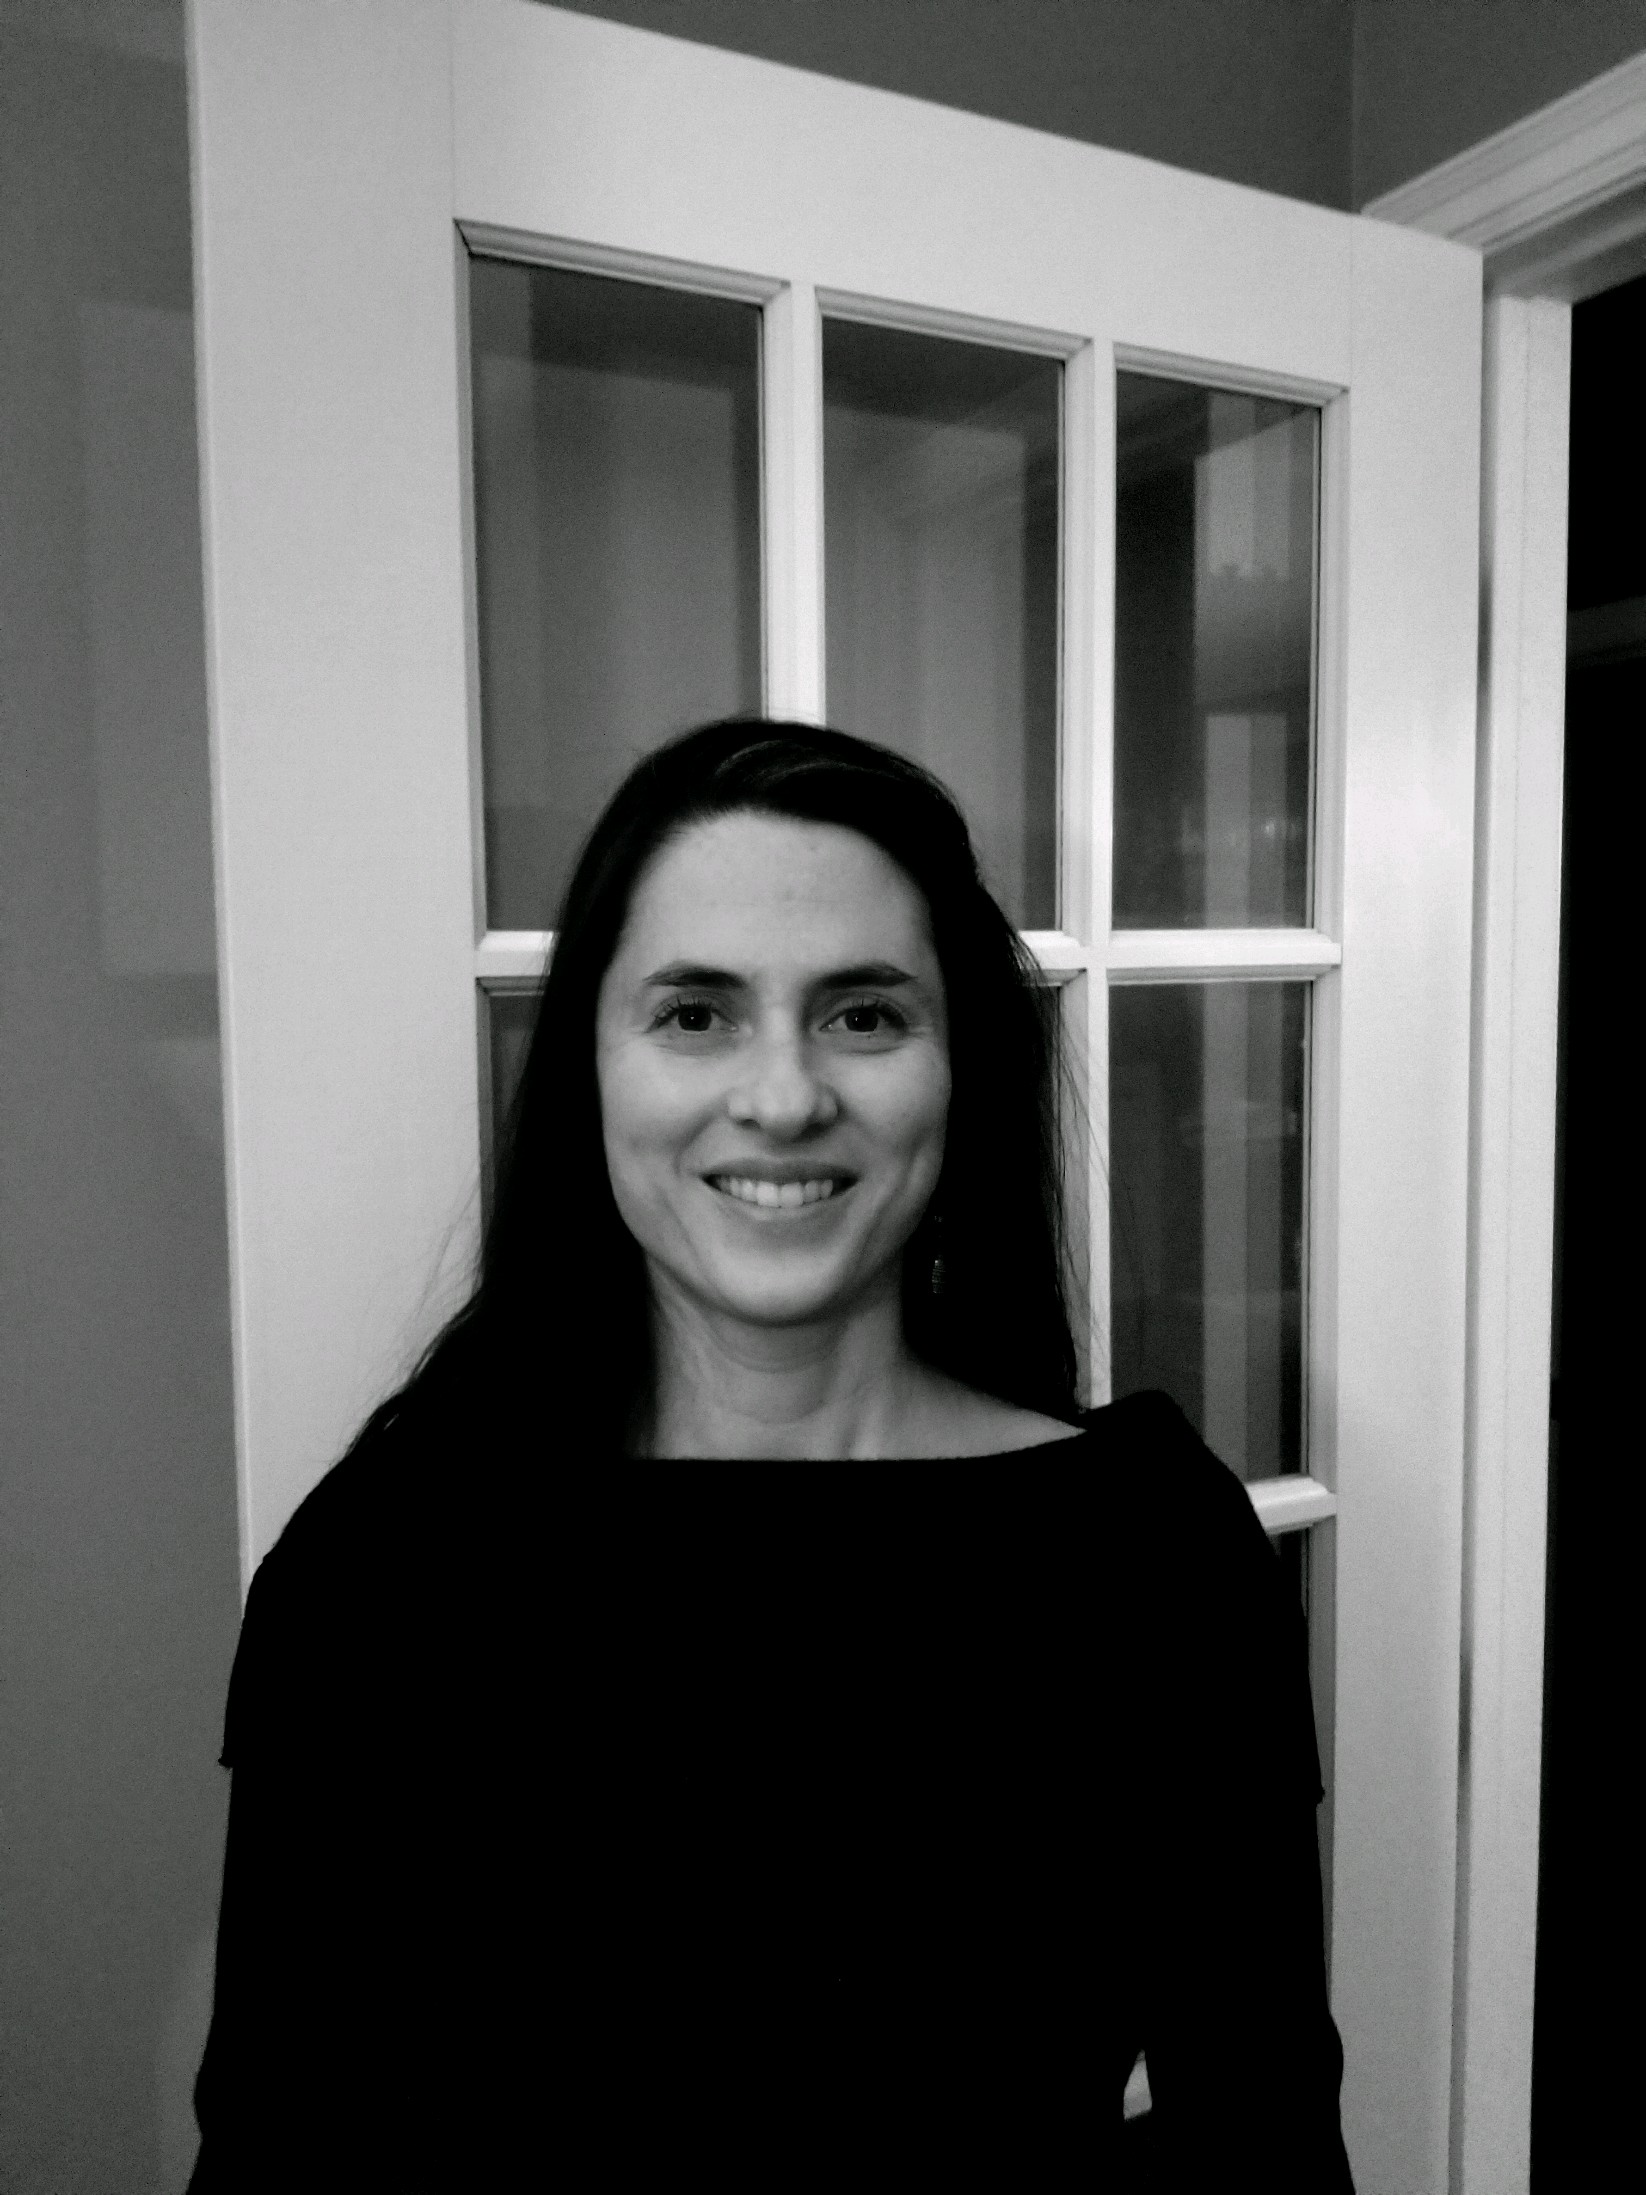 Elizabeth Gutzman, aia   Liz Gutzman has been practicing architecture at HCM since 2008 and also has 4 years of experience prior to that while attending undergraduate and graduate school. Since graduating in 2009 from the University of Minnesota, she has been working full time at HCM Architects and gained a lot experience managing projects and developing client relationships. Seeing a project from start to finish is a very rewarding process and something Liz has a lot of passion for. Liz just recently completed her final ARE exam and can now officially call herself a Licensed Architect!  Outside of the office, Liz enjoys the outdoors, golfing, yoga, cheering on the MN Wild, and most importantly spending quality time with her family.